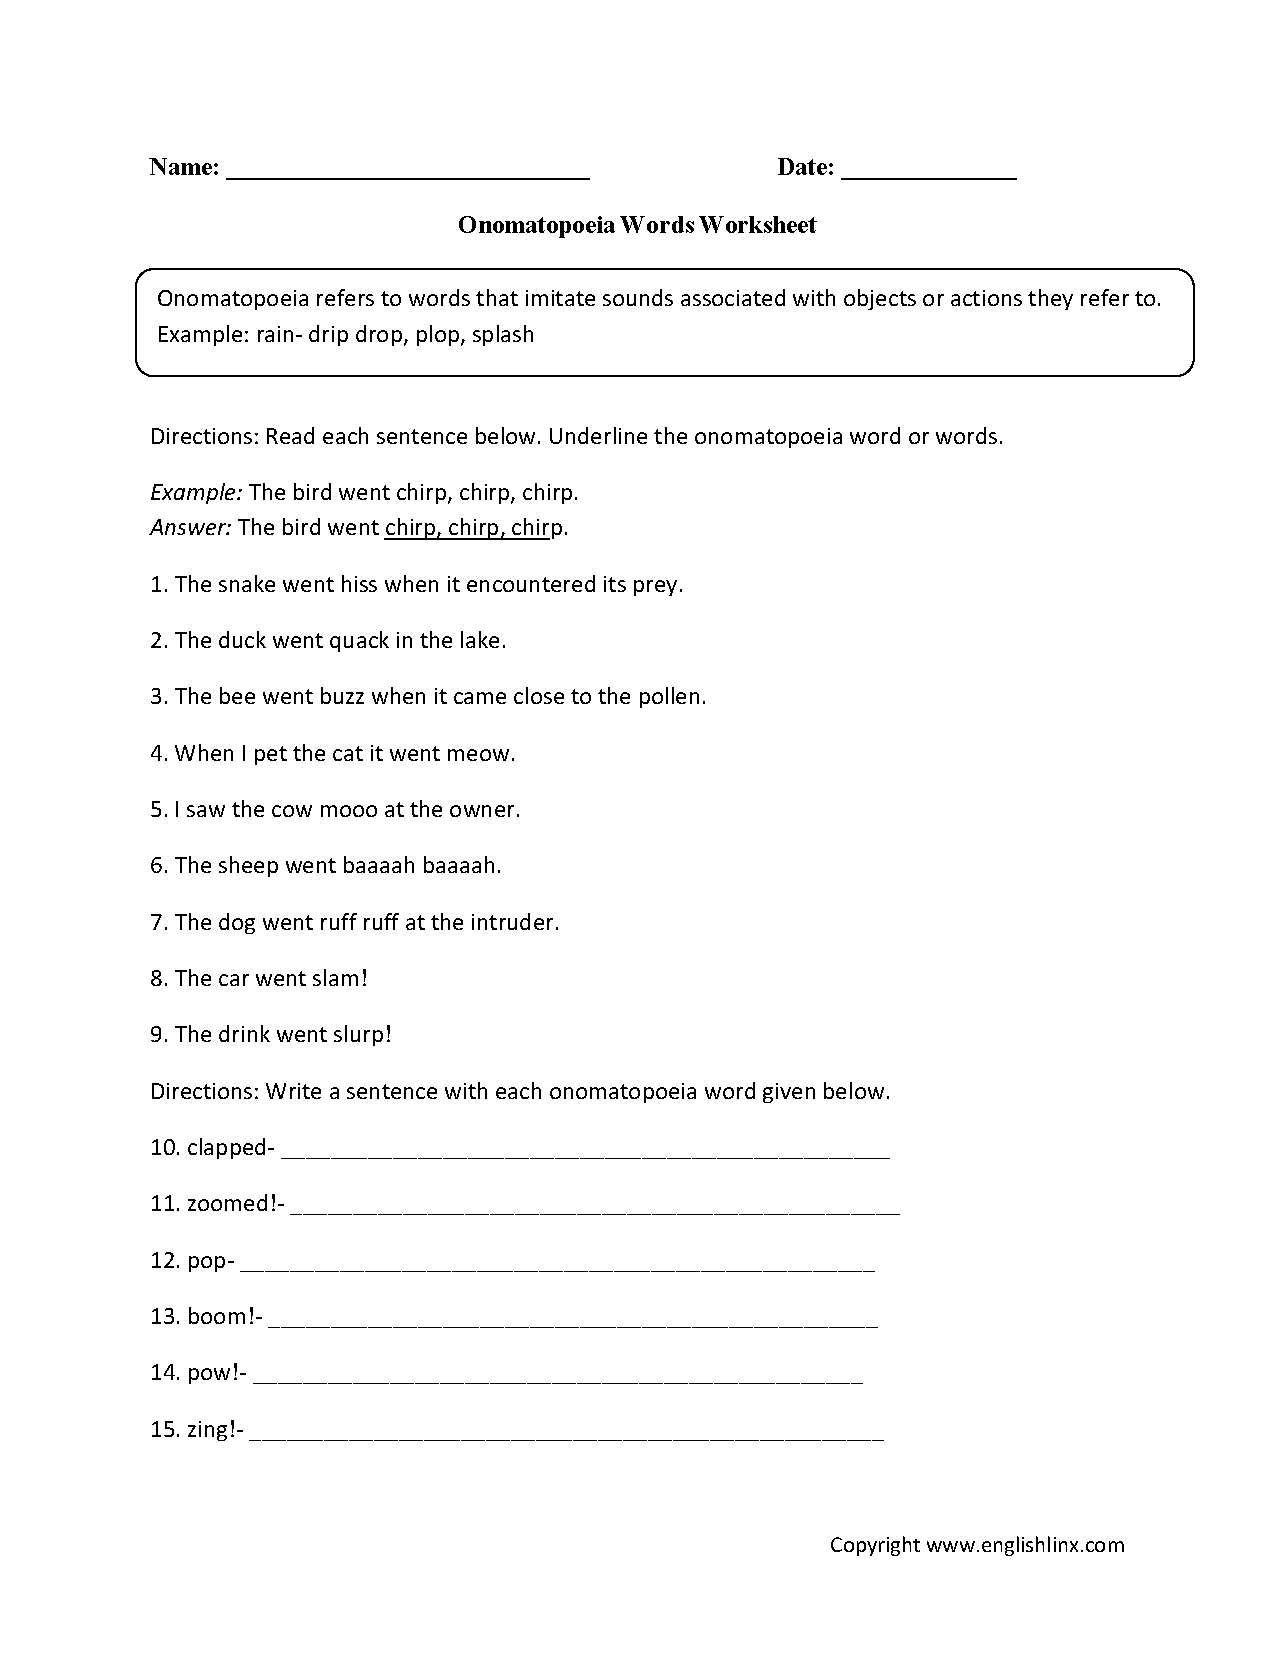 Uncategorized Onomatopoeia Worksheets onomatopoeia words worksheet back to school pinterest these worksheets are great for working with use the beginner interm